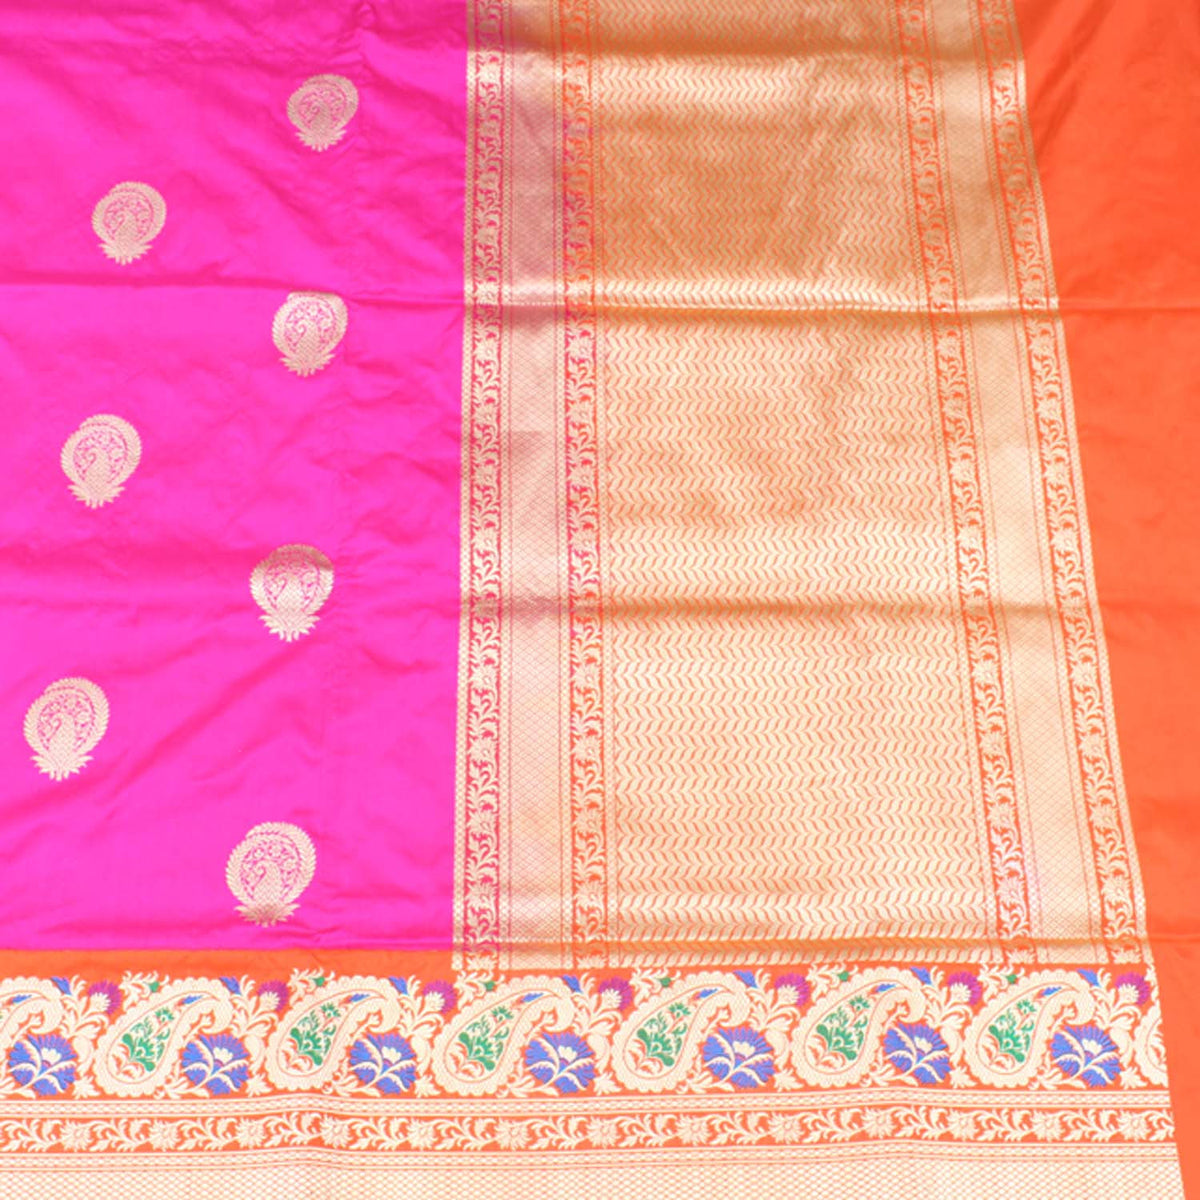 Indian Pink-Orange Pure Katan Silk Banarasi Handloom Saree - Tilfi - 2